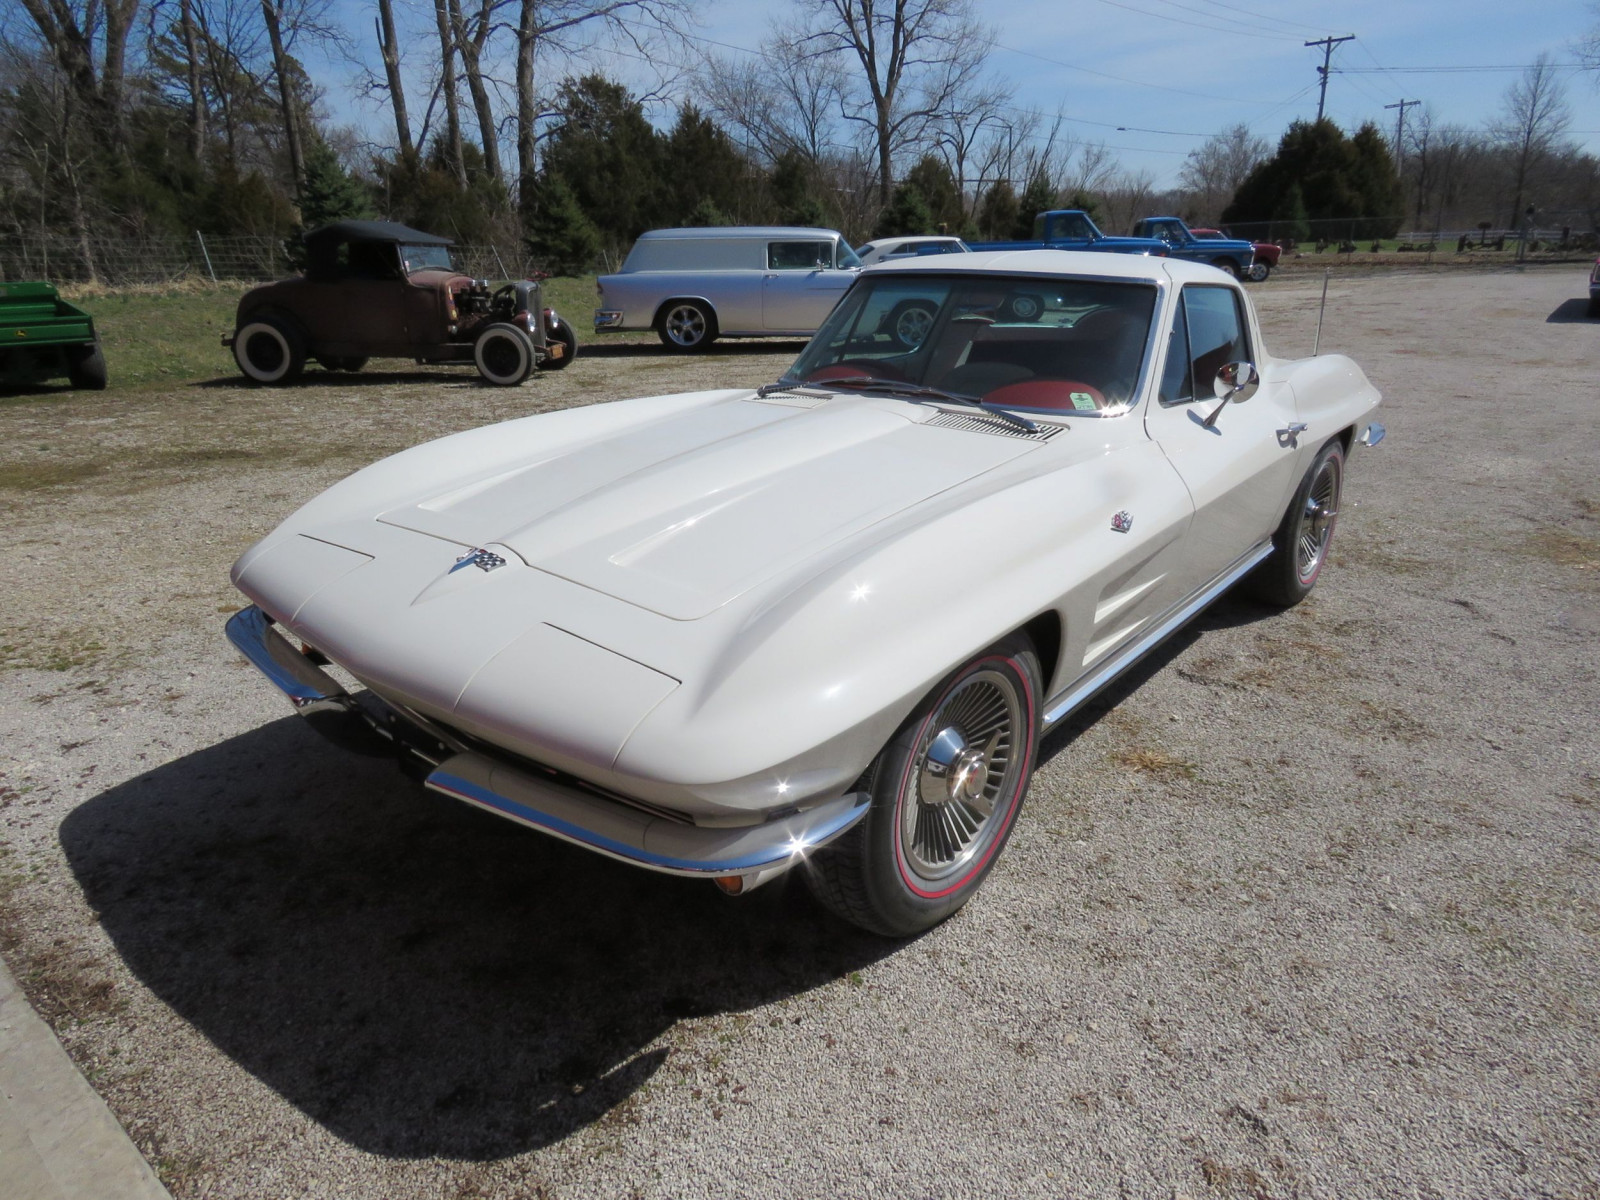 Beautiful 1964 Chevrolet Corvette Sting Ray Coupe - Image 1